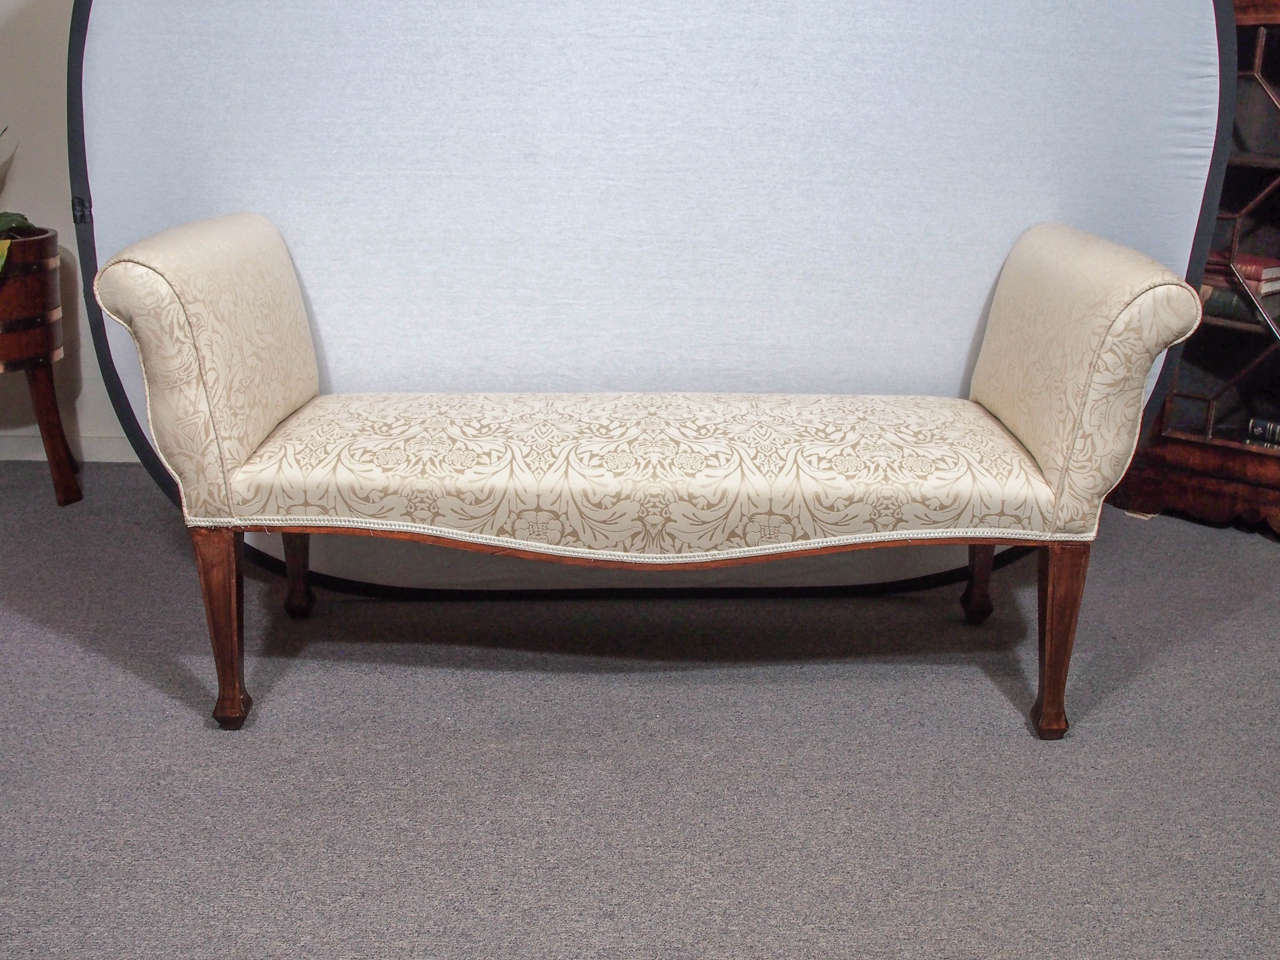 Antique English Window Seat For Sale at 1stdibs